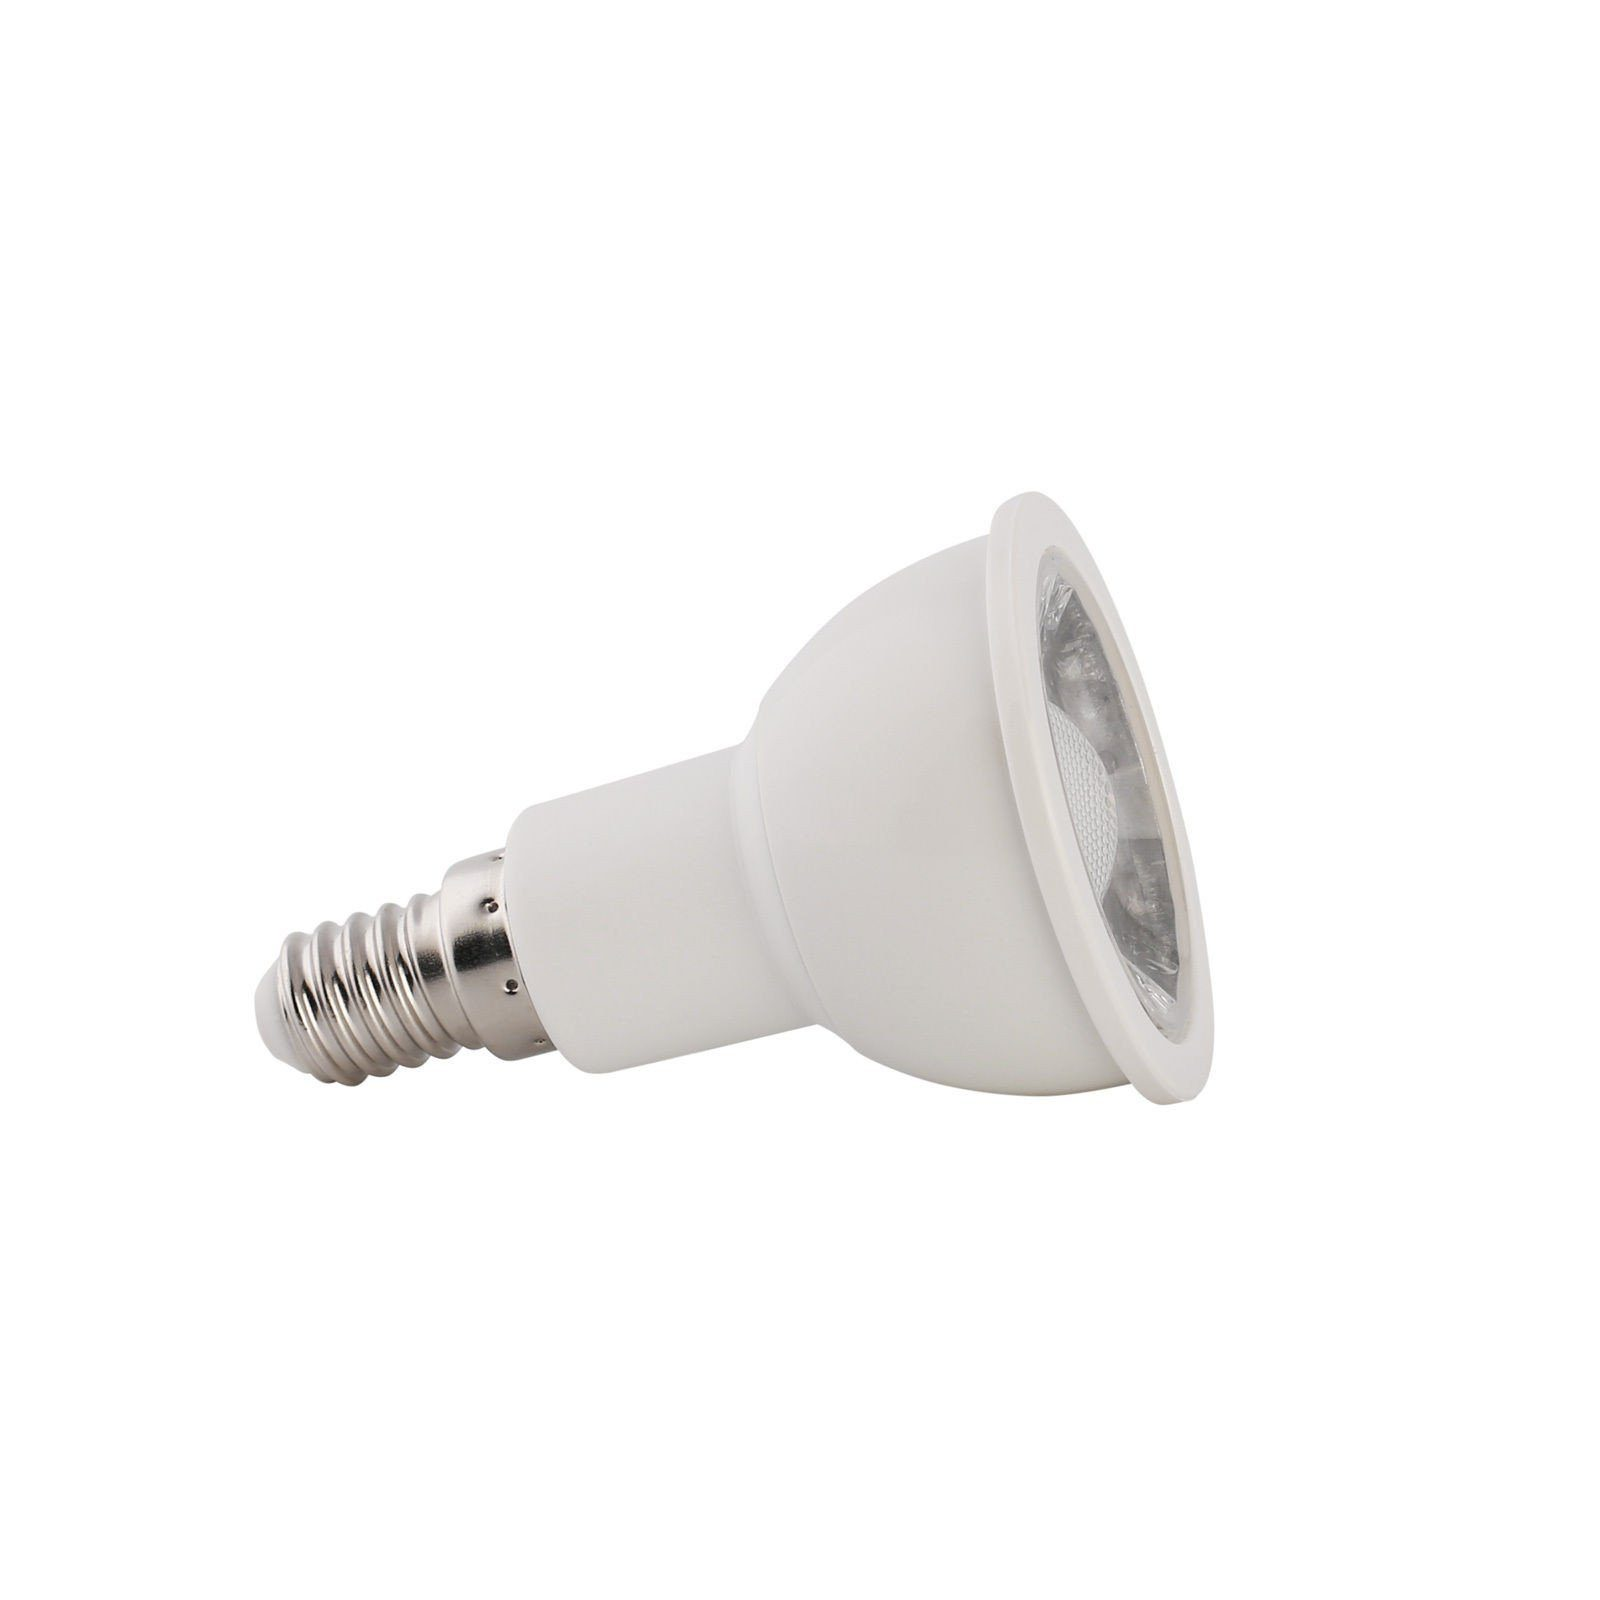 Pool Tone 120V 16W Pentair Hayward Spa Bulb Cool White LED Home & Garden > Lighting > Light Bulbs Pool Tone